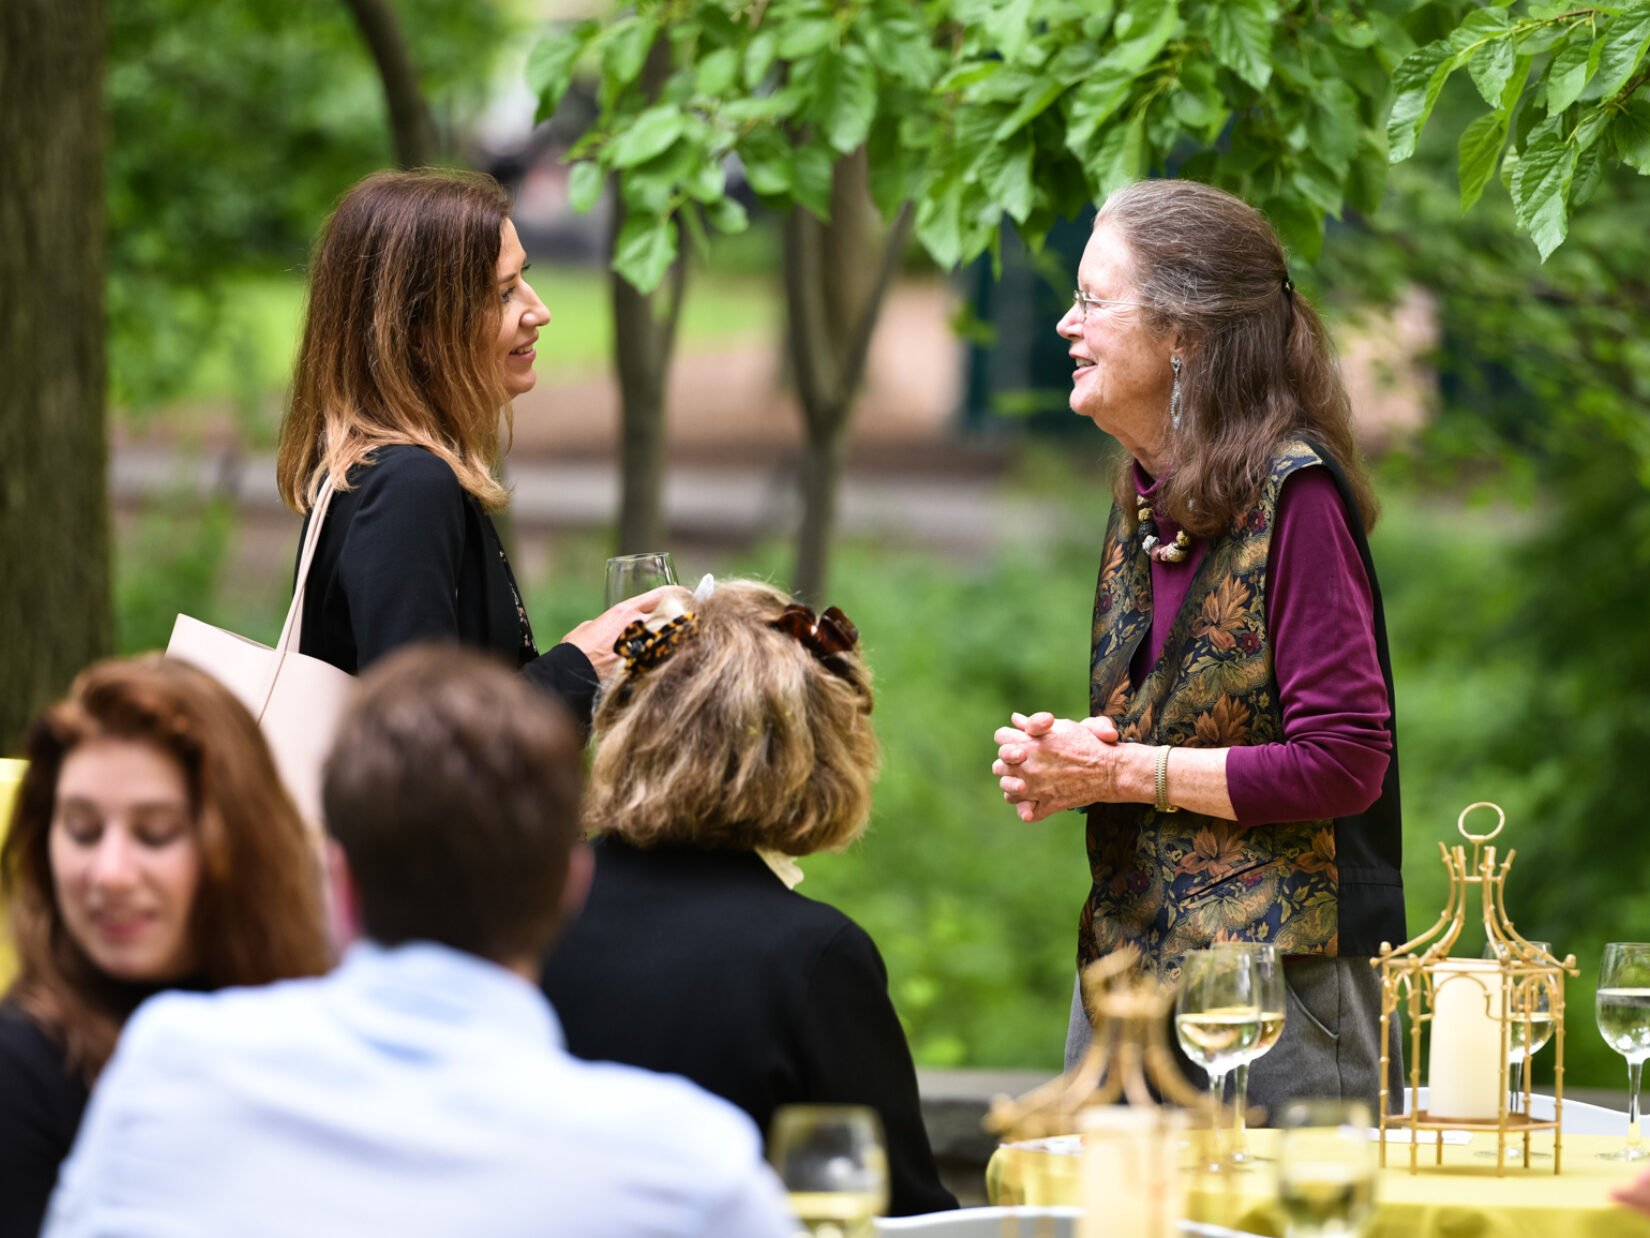 Park supporters at an event in Shakespeare Garden